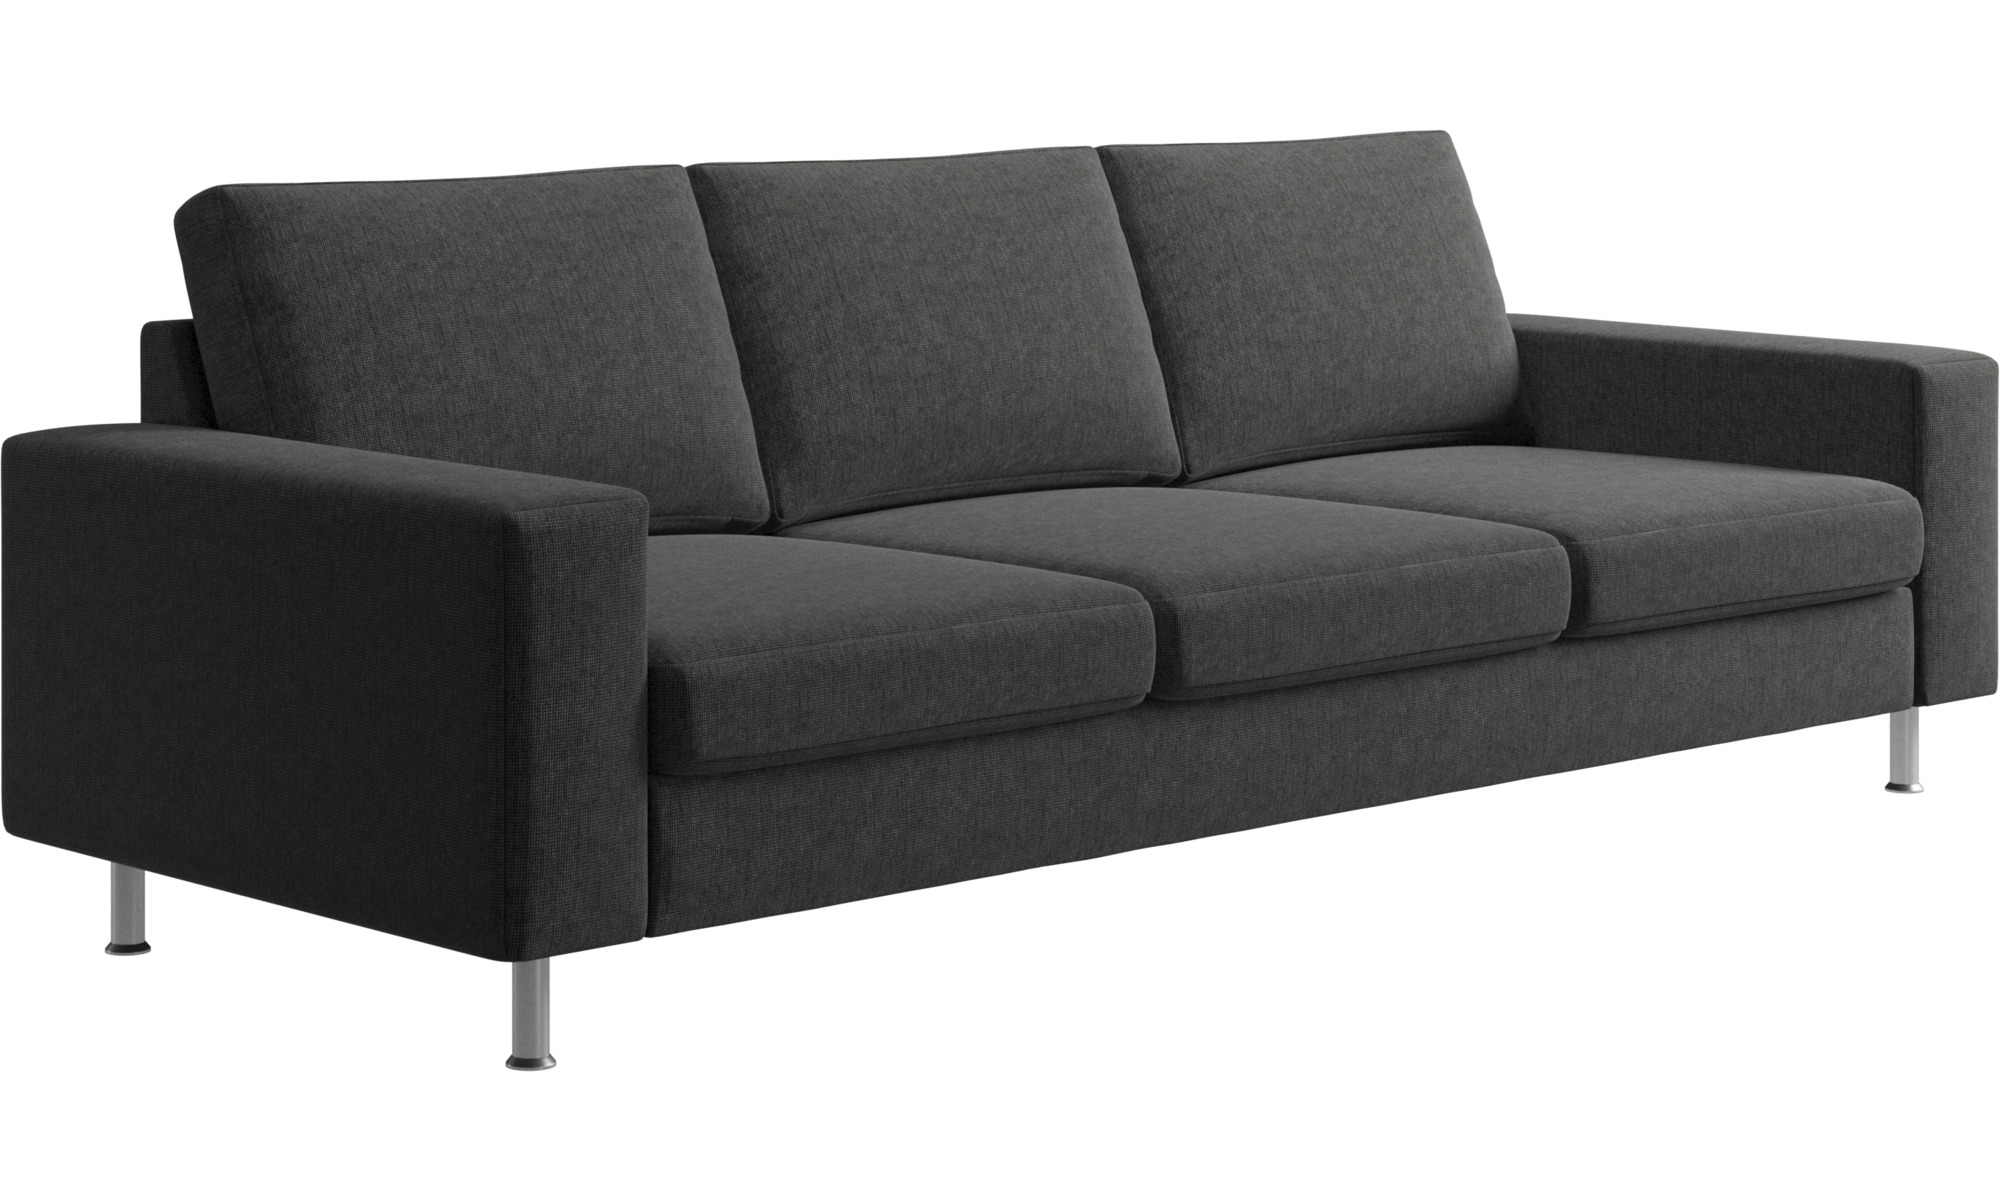 Black Three Person Couch: 3 Seater Sofas